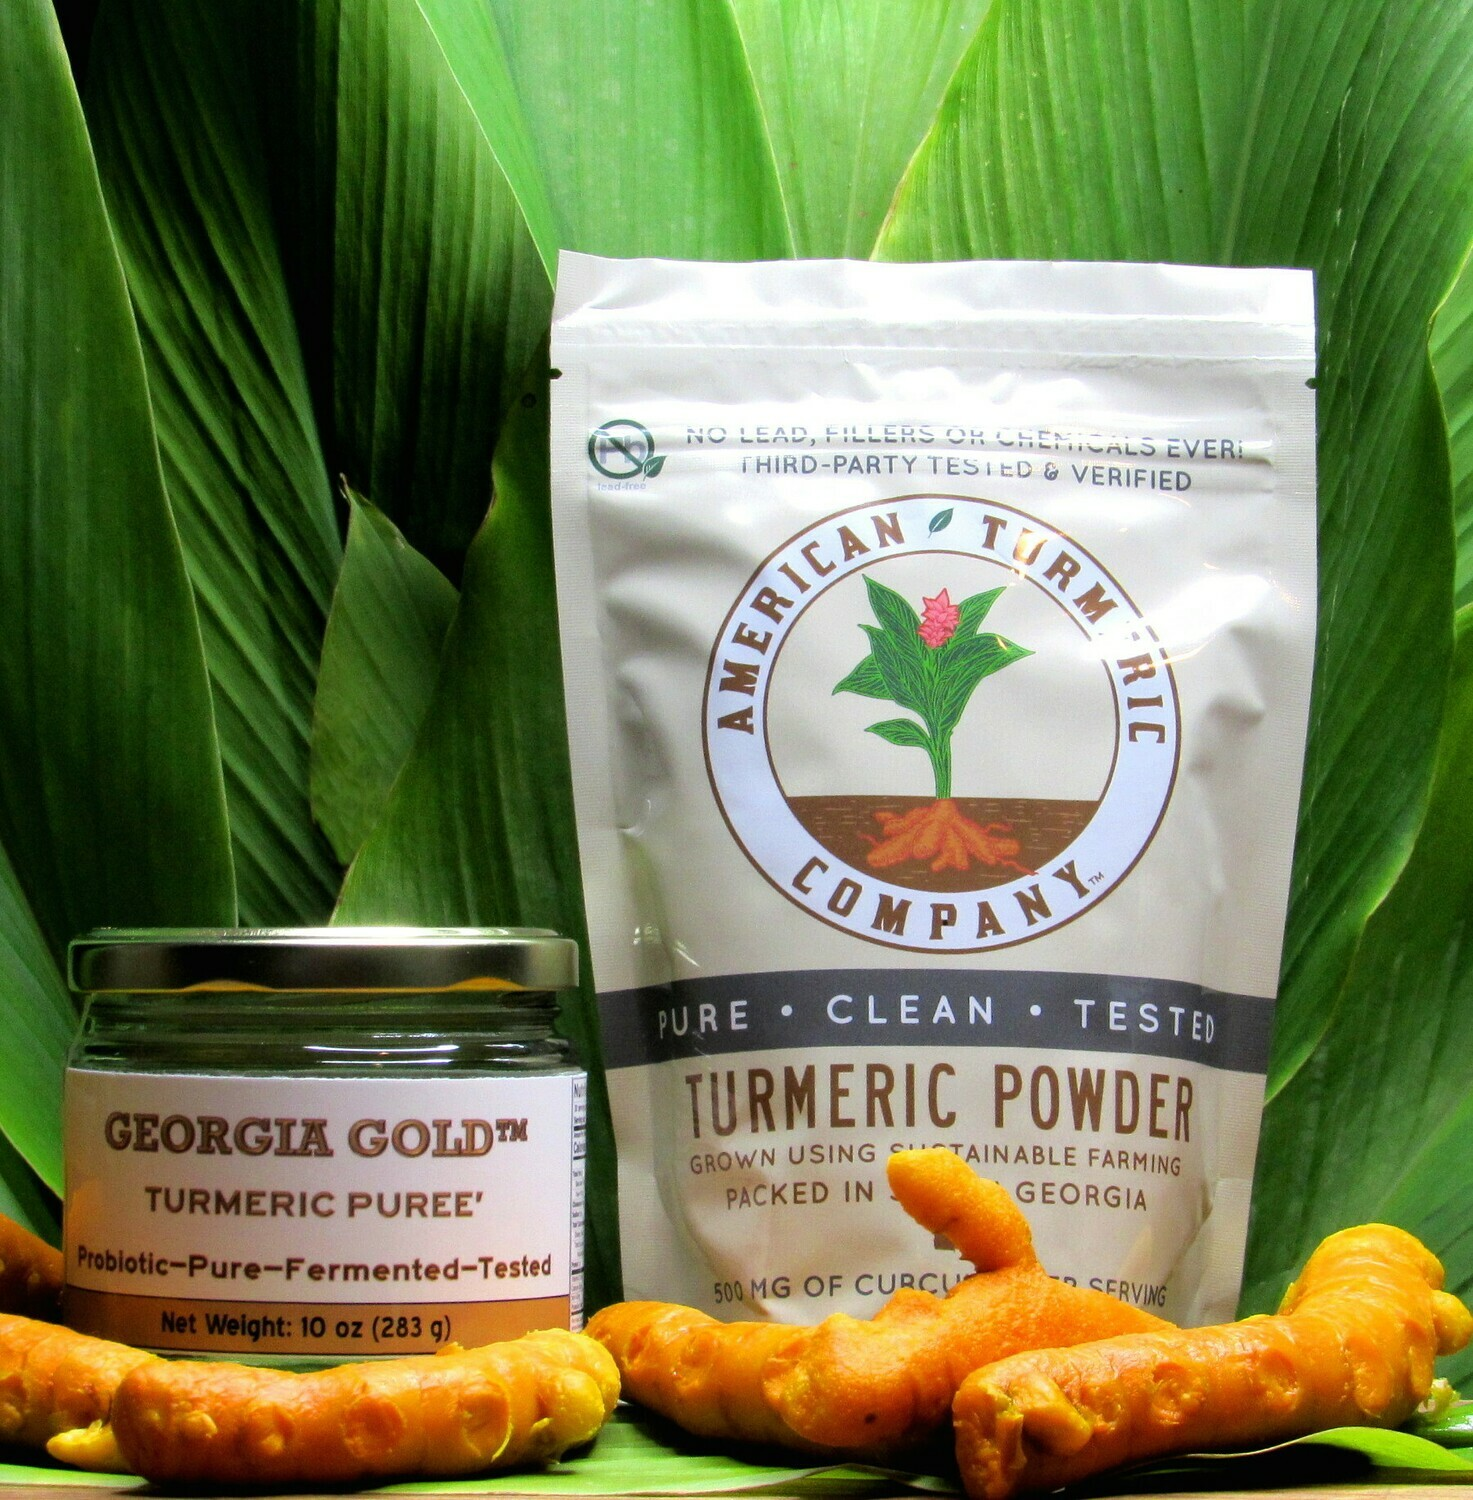 COMBO SPECIAL - Georgia Gold Turmeric Puree and Turmeric Powder - Now With Discounts - SAVE BIG